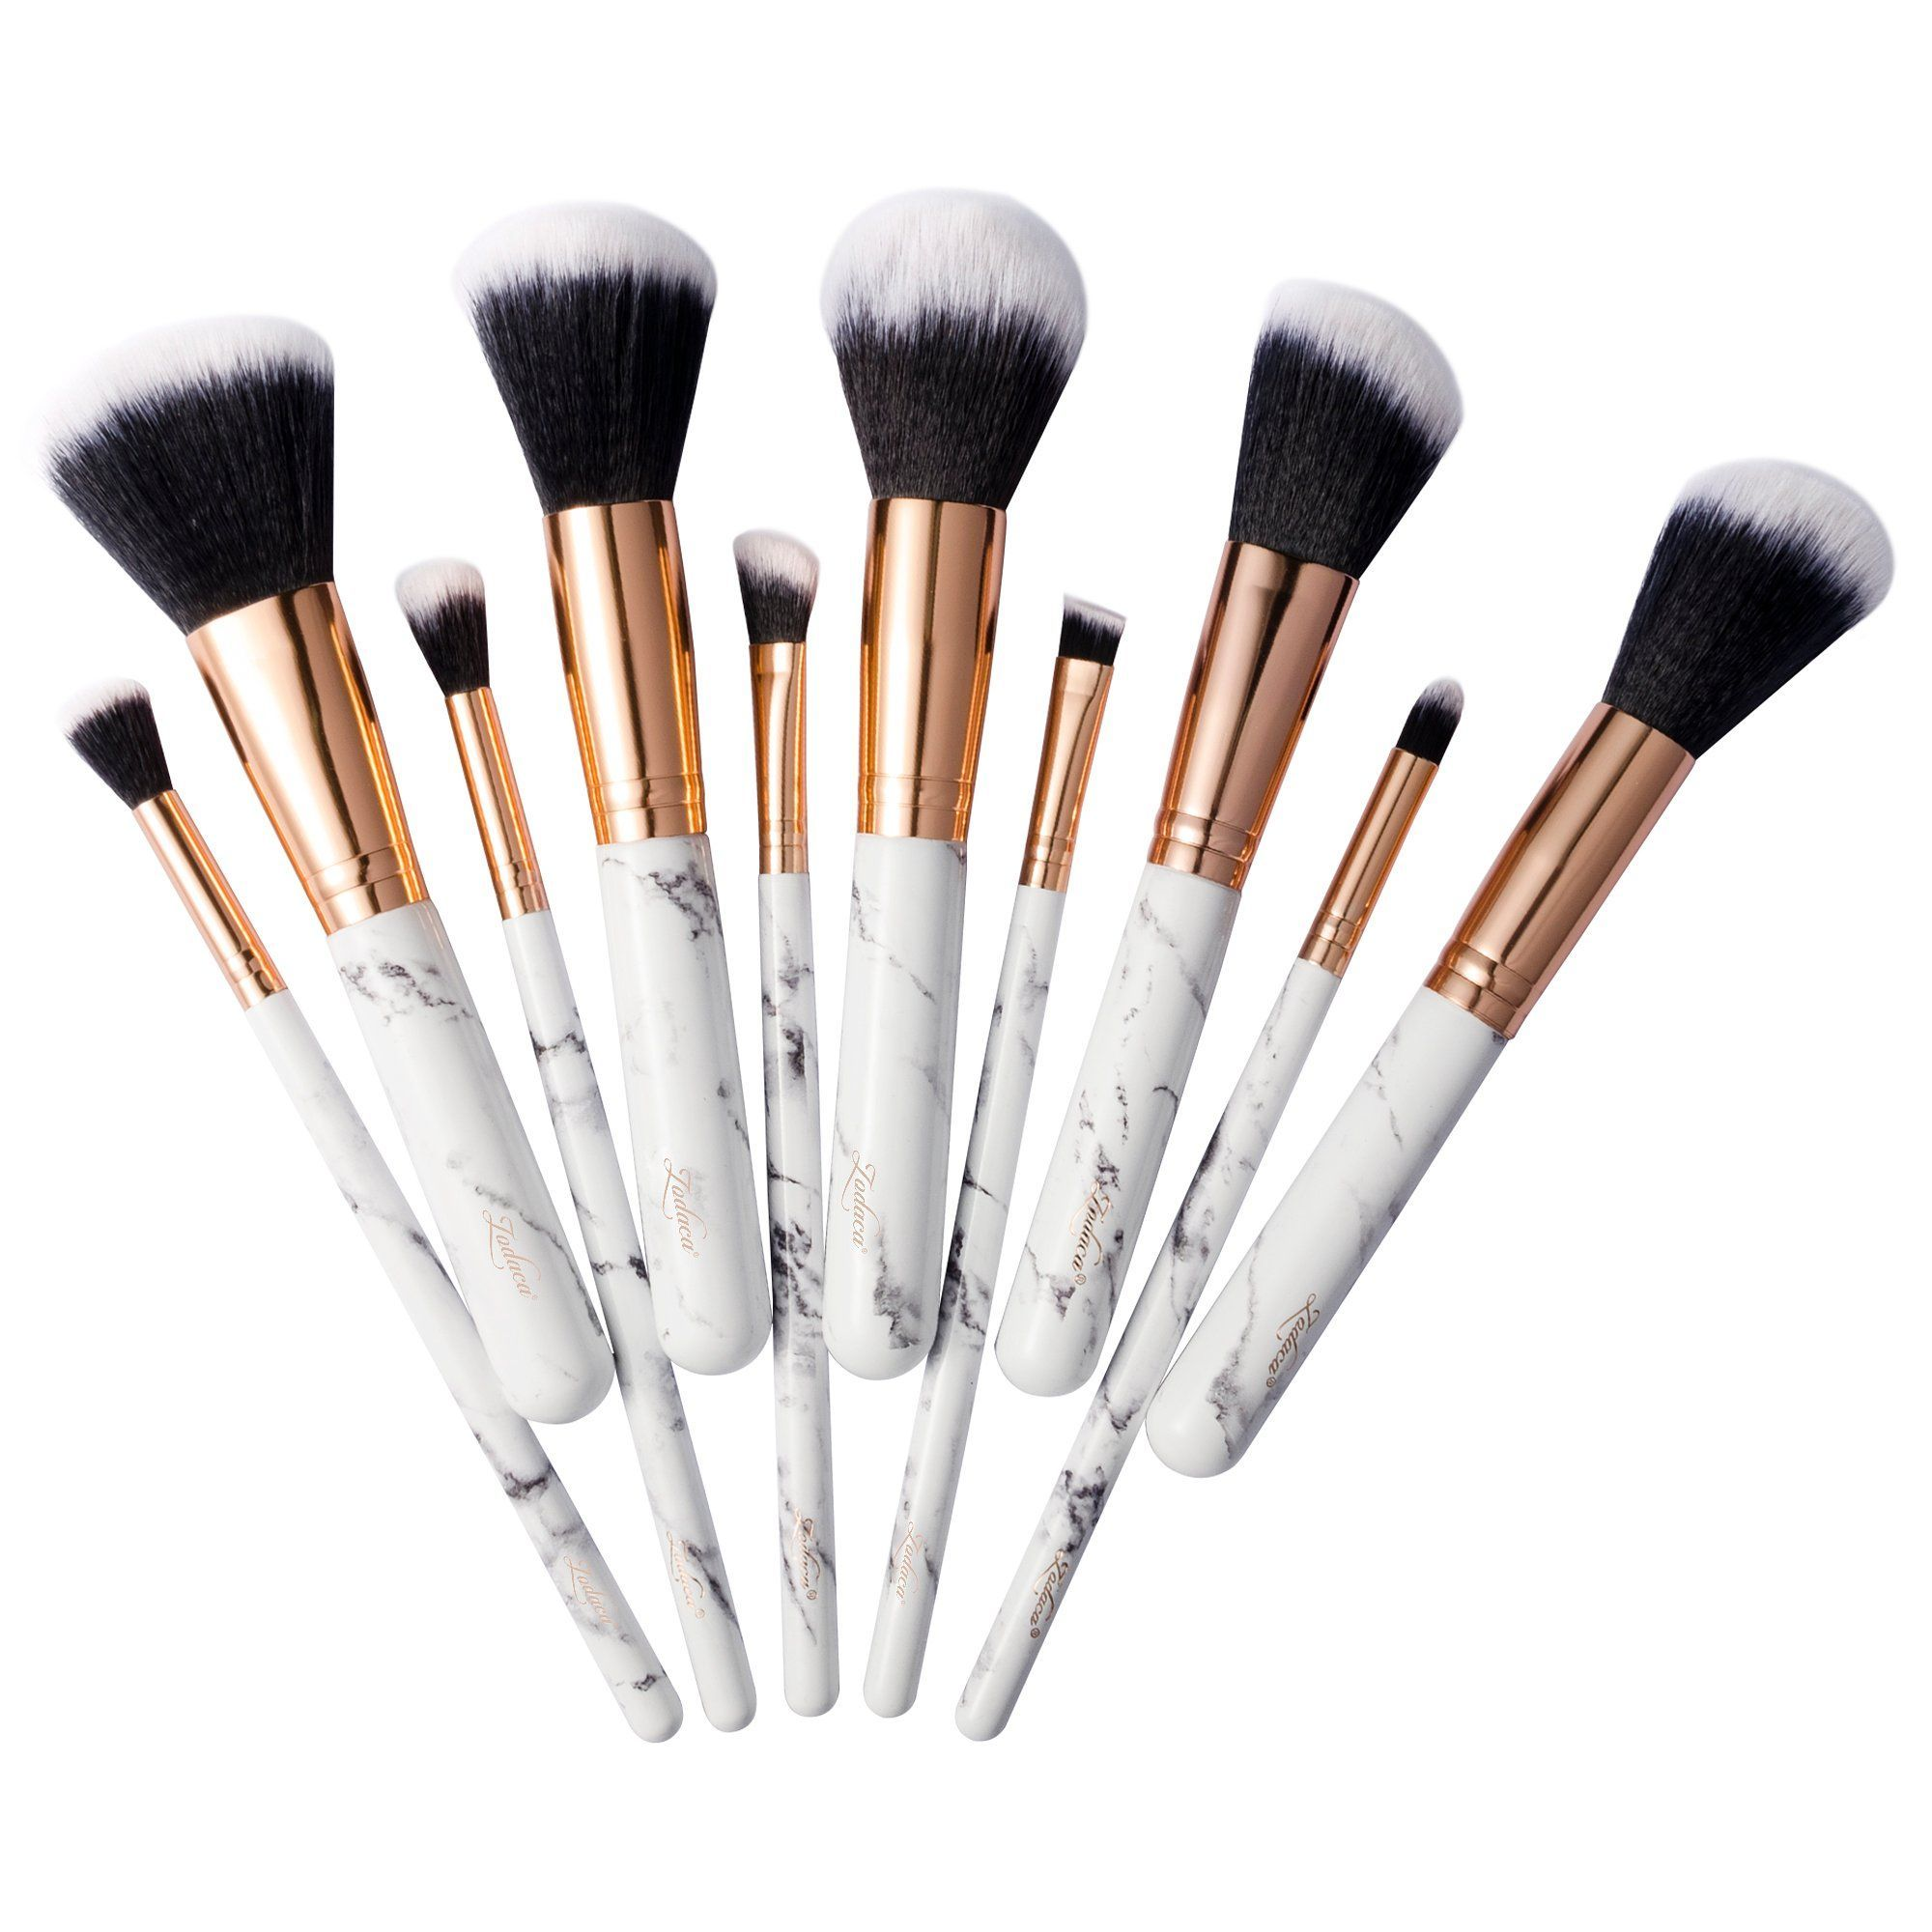 10 Piece Marble Design Professional Makeup Brush Set In 2020 Make Up Pinsel Make Up Pinsel Set Make Up